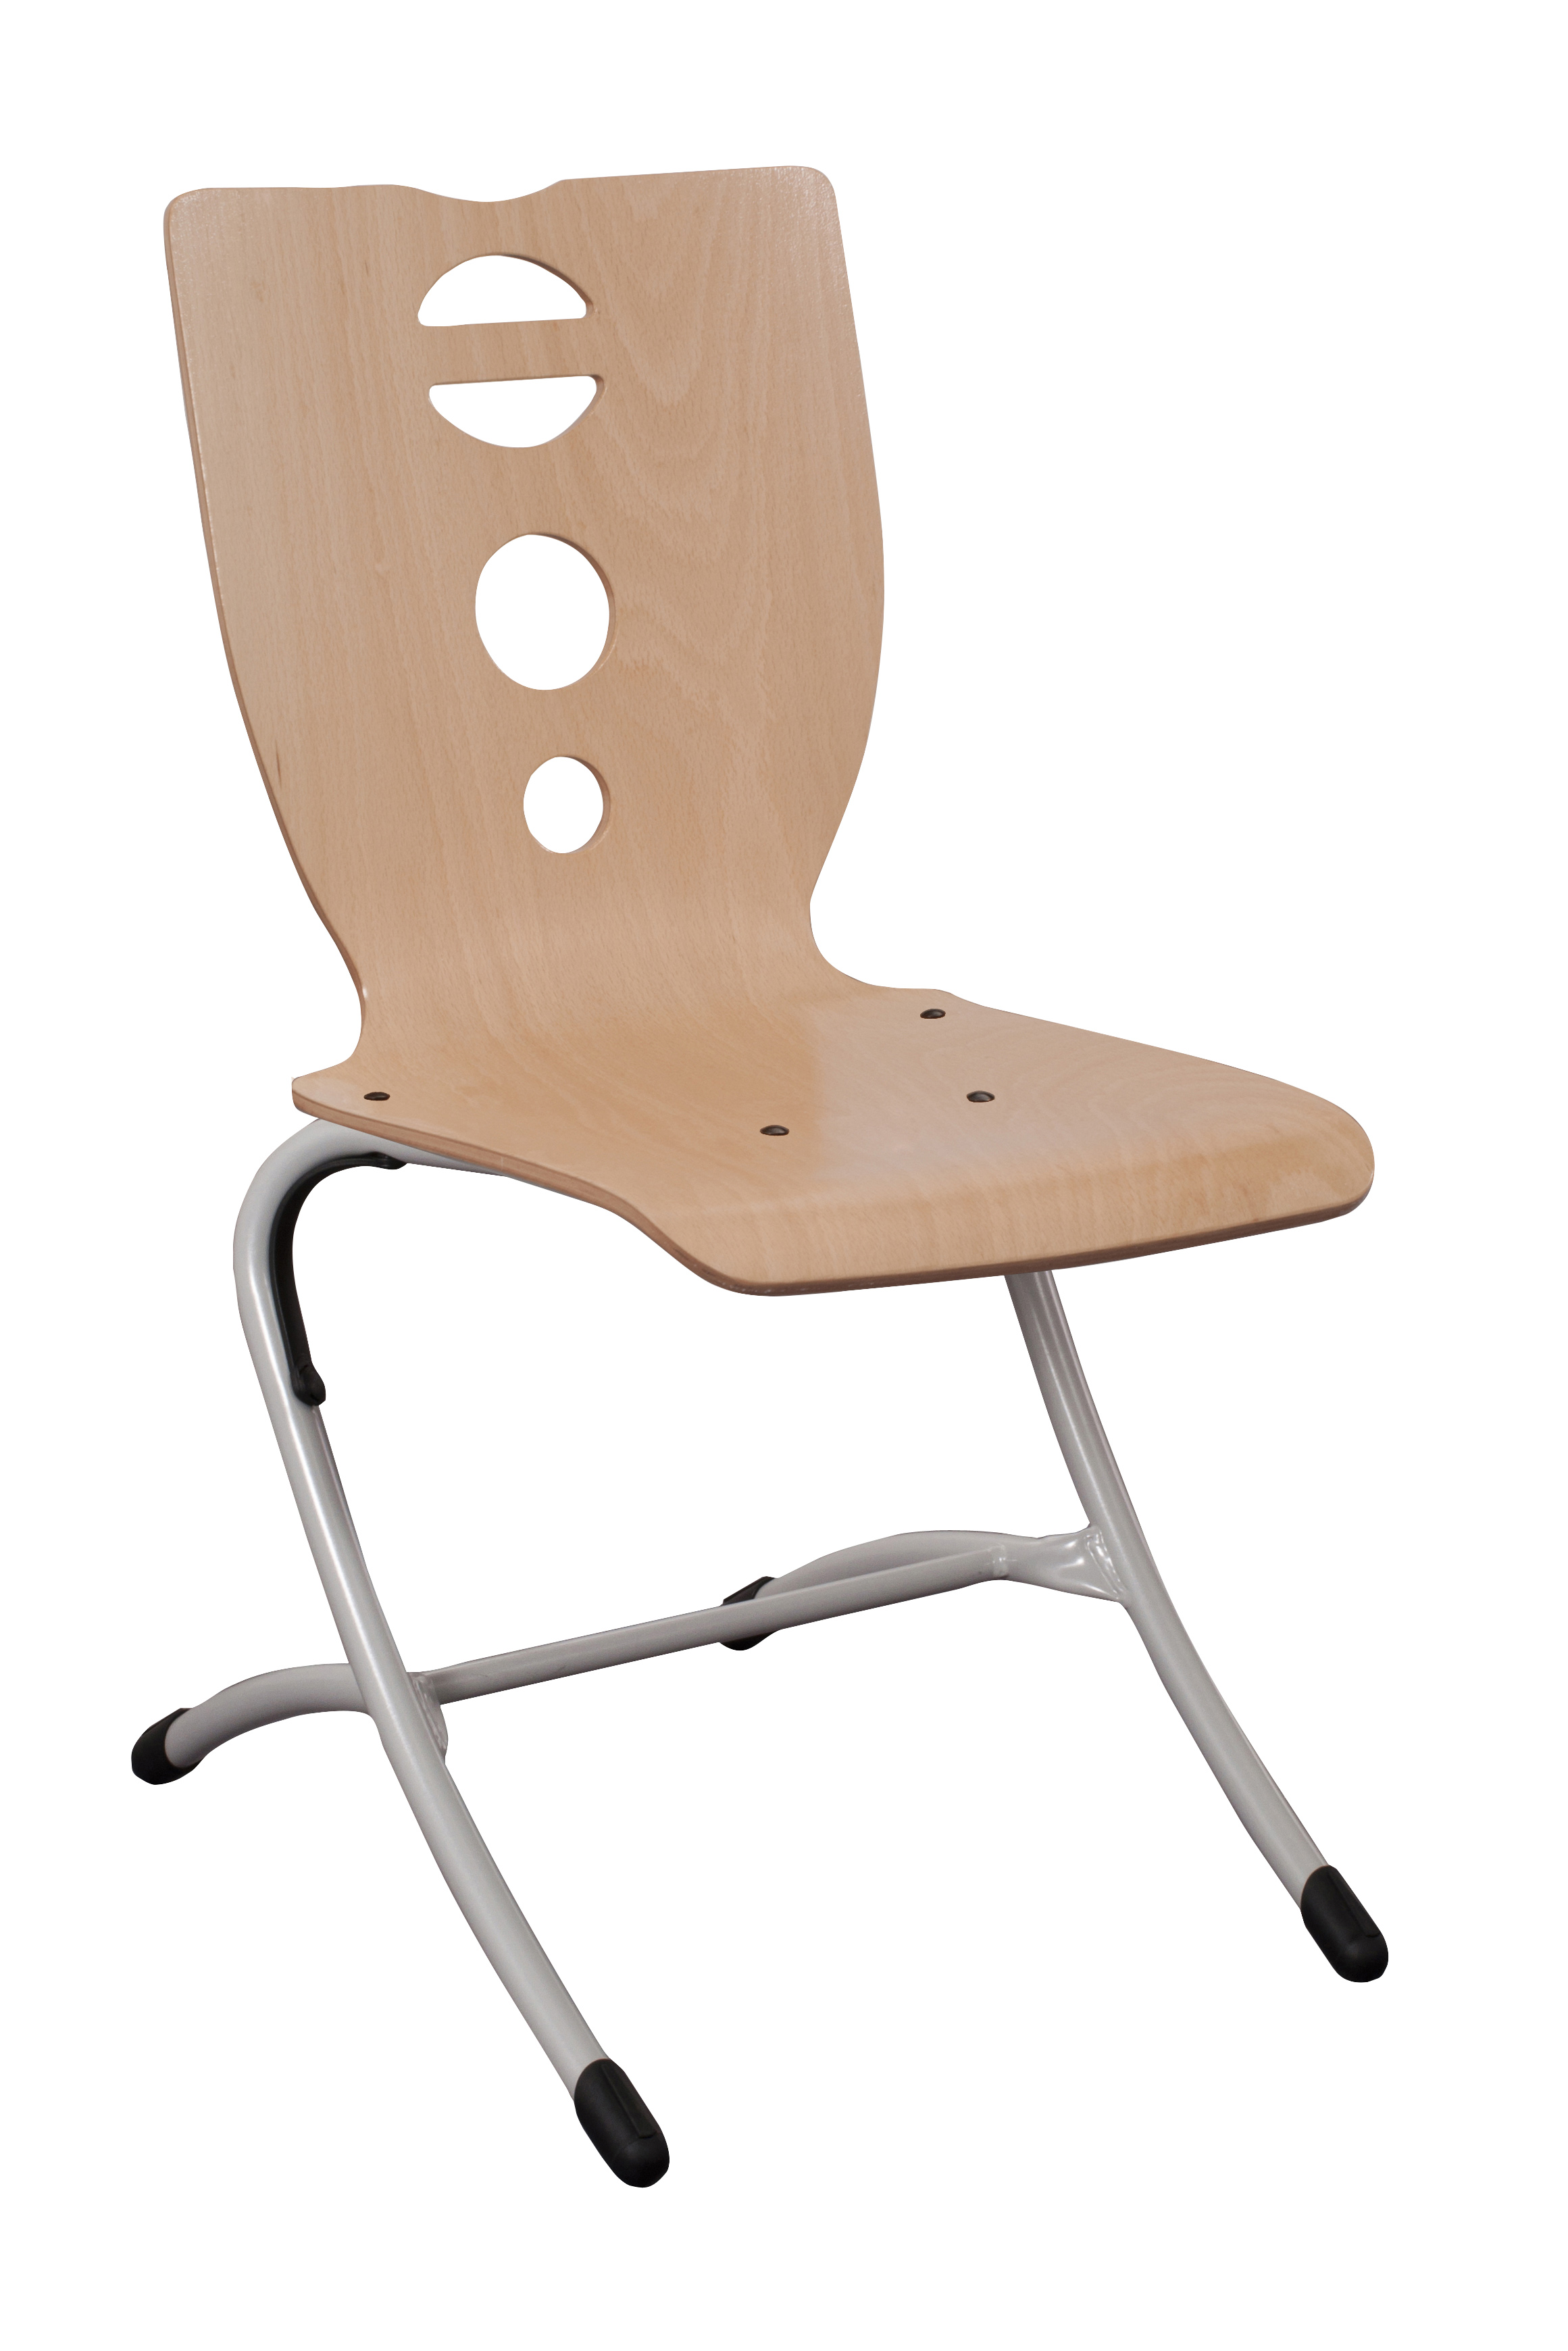 Chaise coque bois ast 4 pieds simire for Chaise 4 pieds